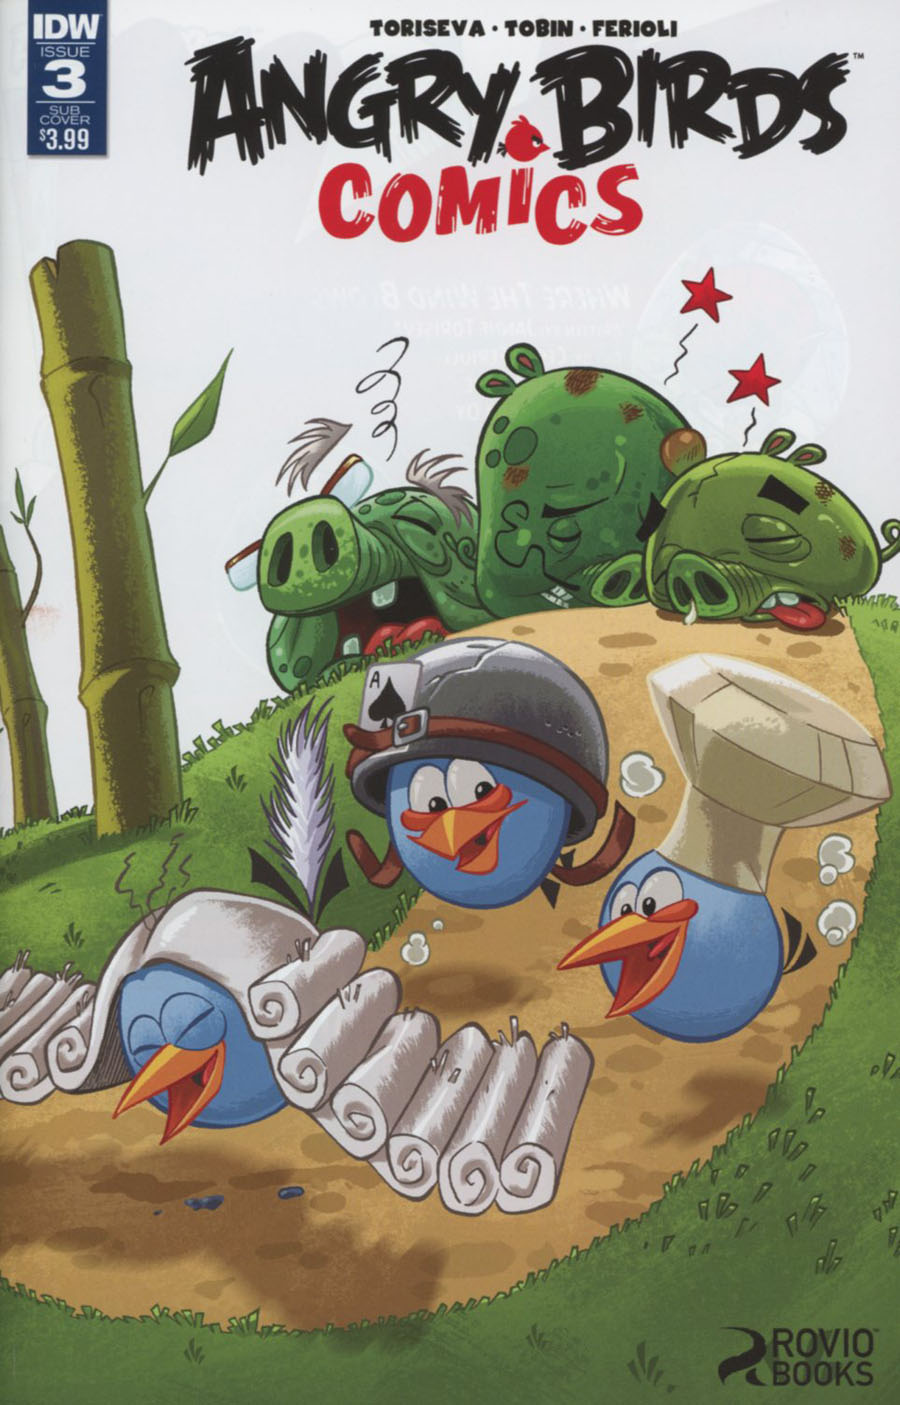 Angry Birds Comics Vol 2 #3 Cover B Variant Paco Rodriques Subscription Cover